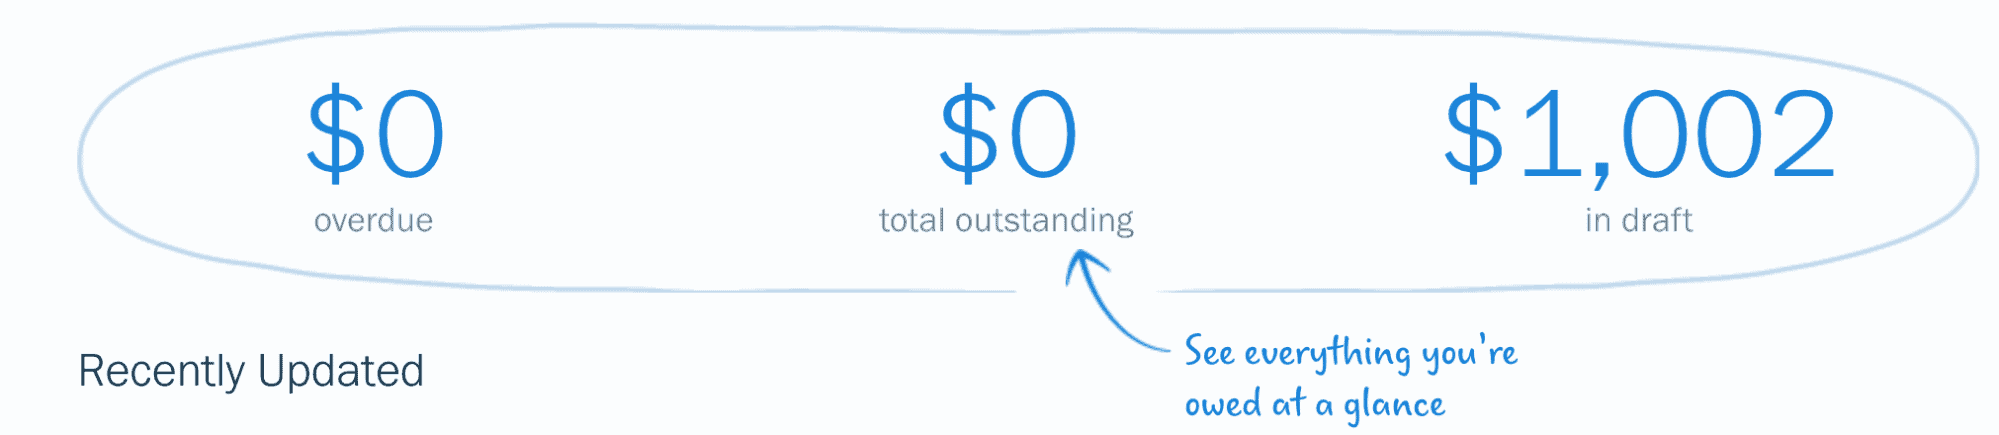 the outstanding, overdue, and draft amount based on your invoices